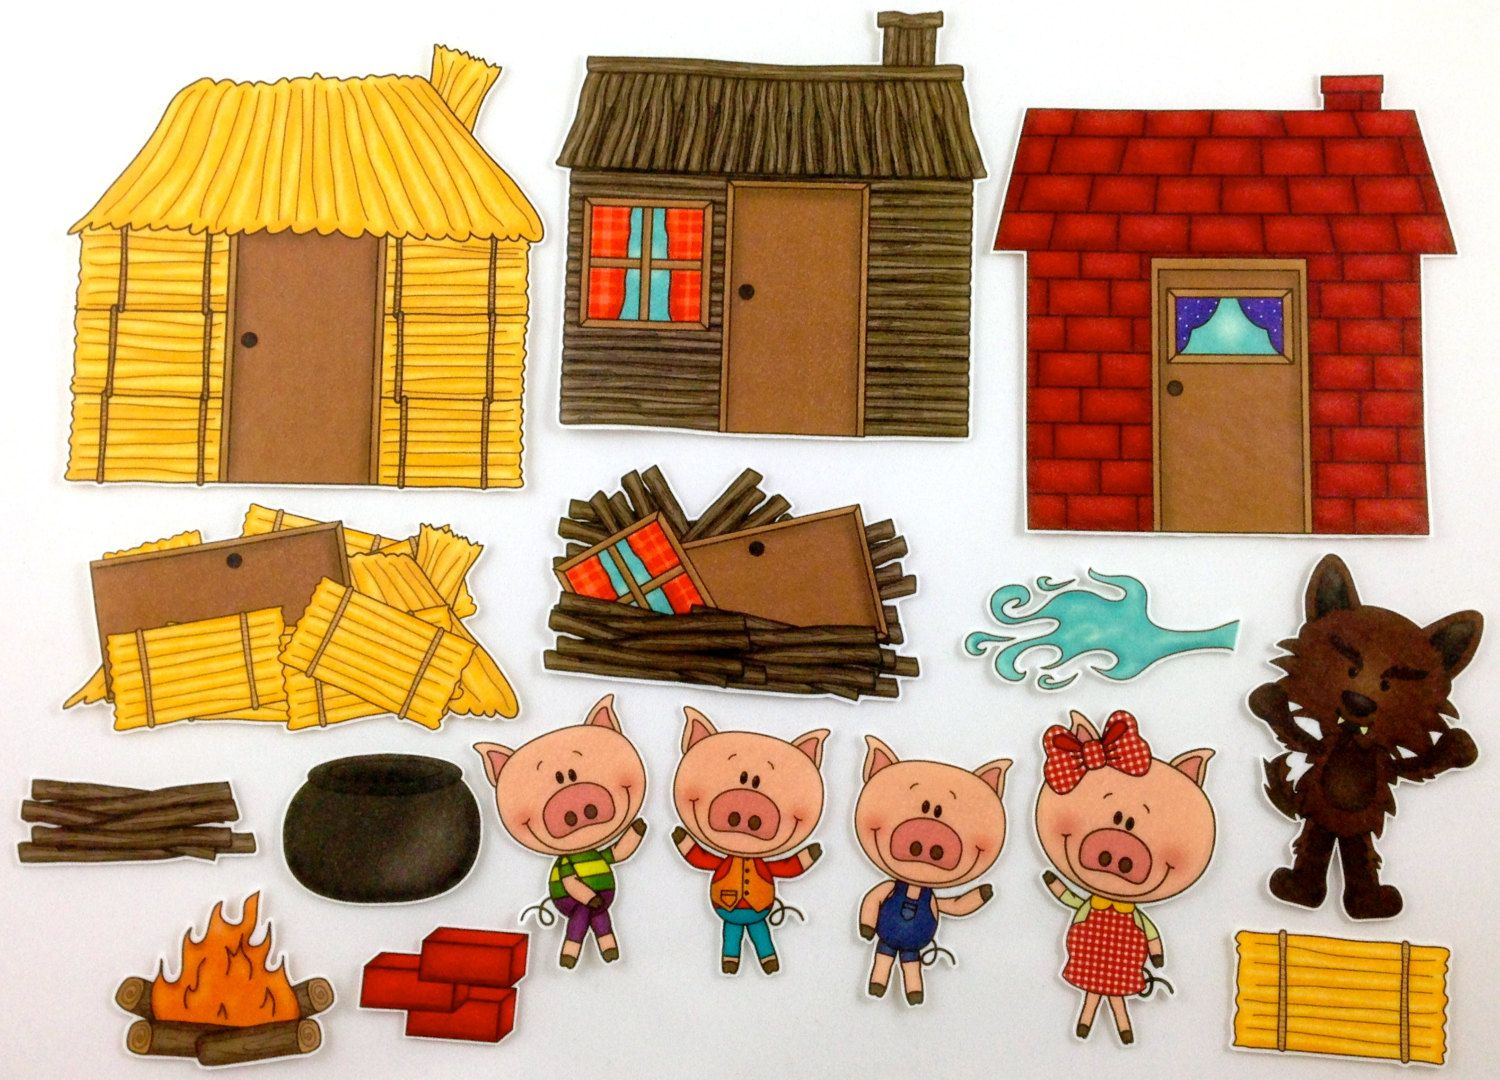 Three Little Pigs Felt Board Story Set By Bymaree On Etsy 20 00 Another Version Sold At